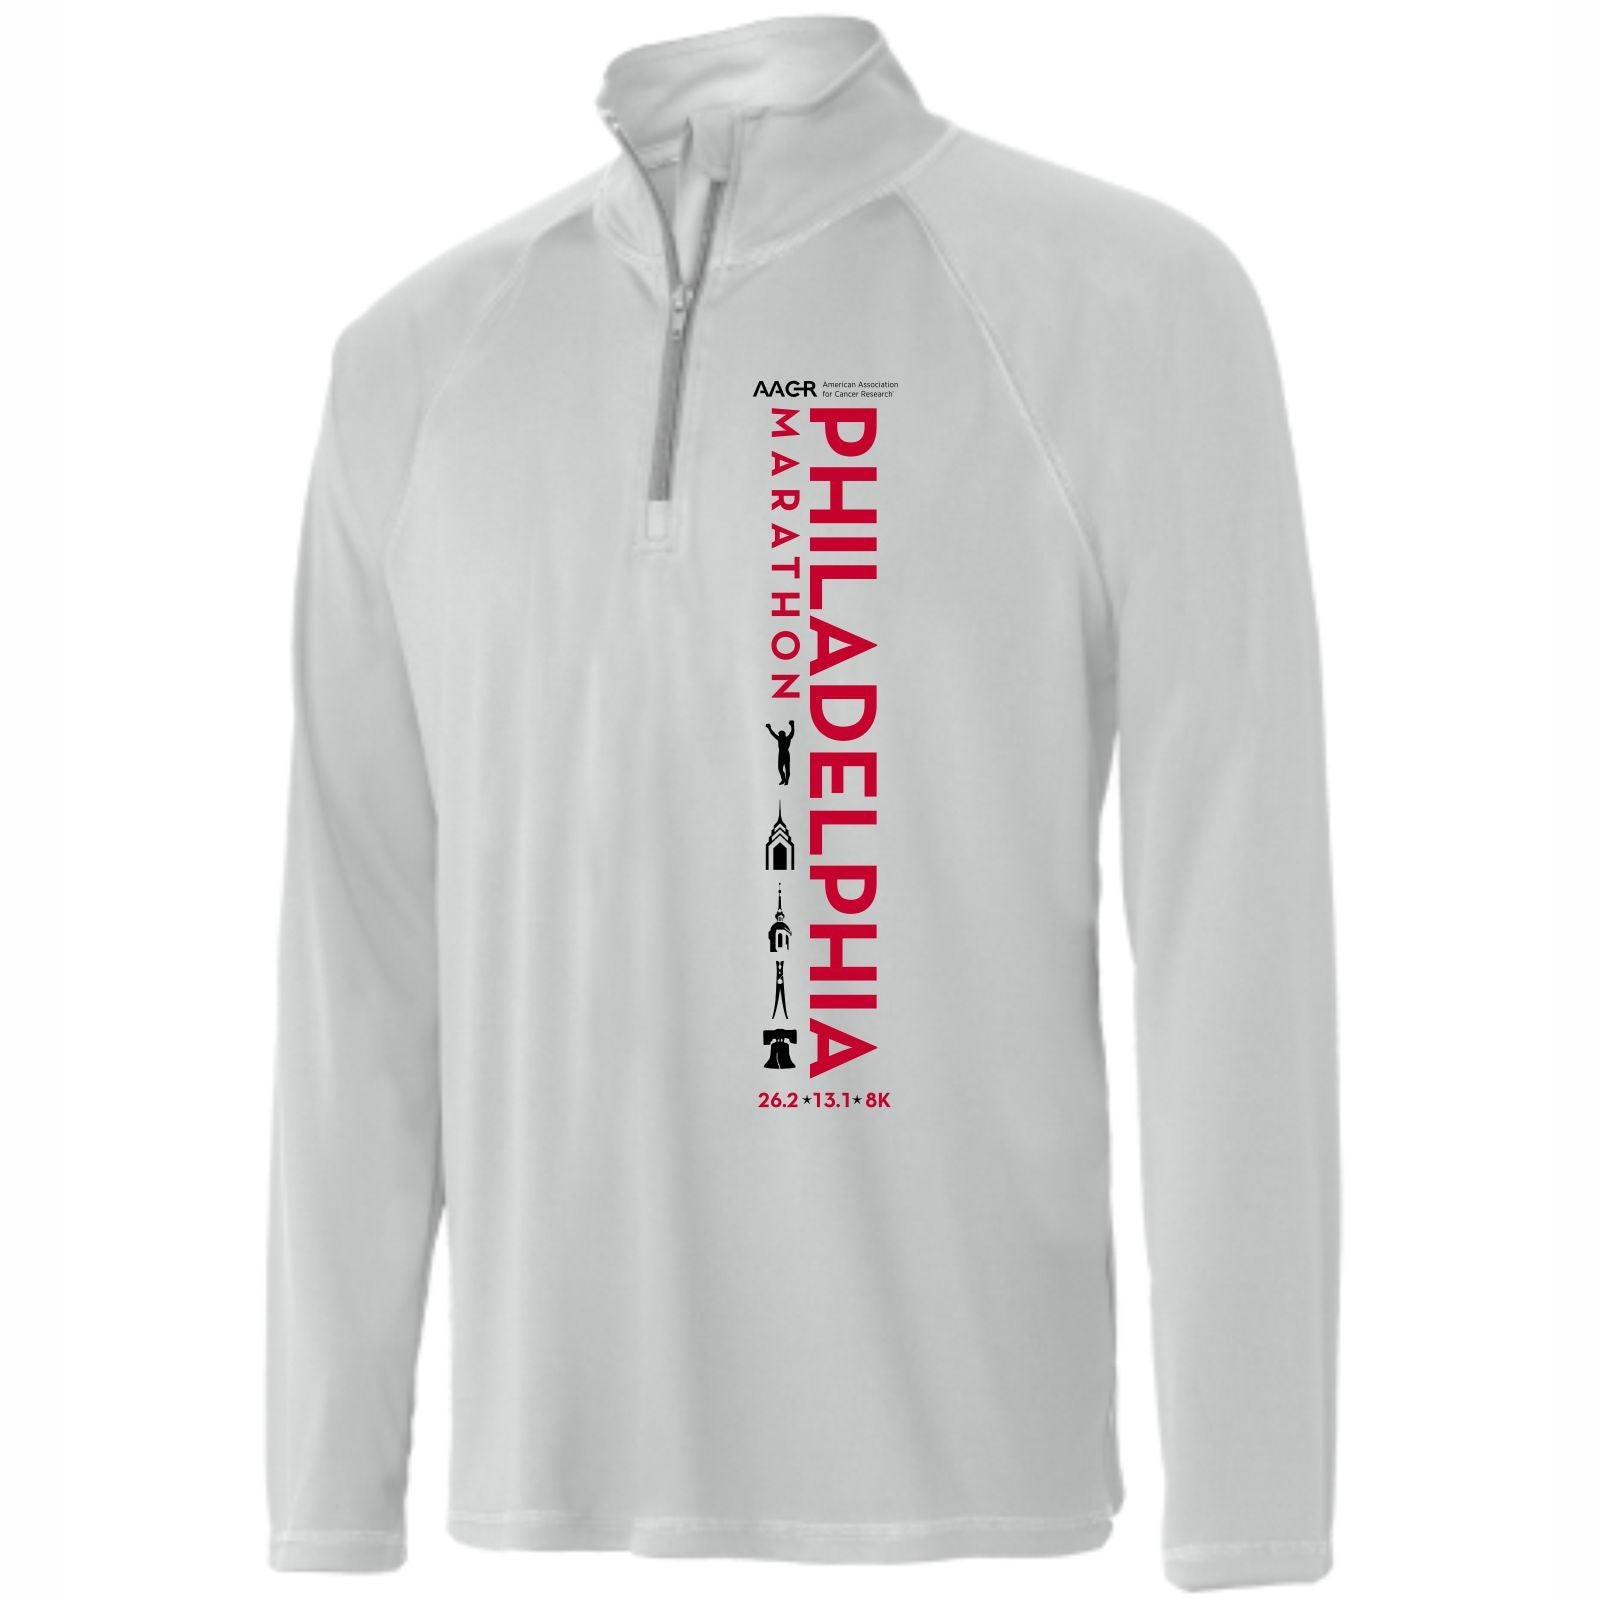 AACR Philadelphia Marathon 'Left Chest Print Vertical' Men's Tech Lightweight 1/4 Zip Pullover - Sport Silver